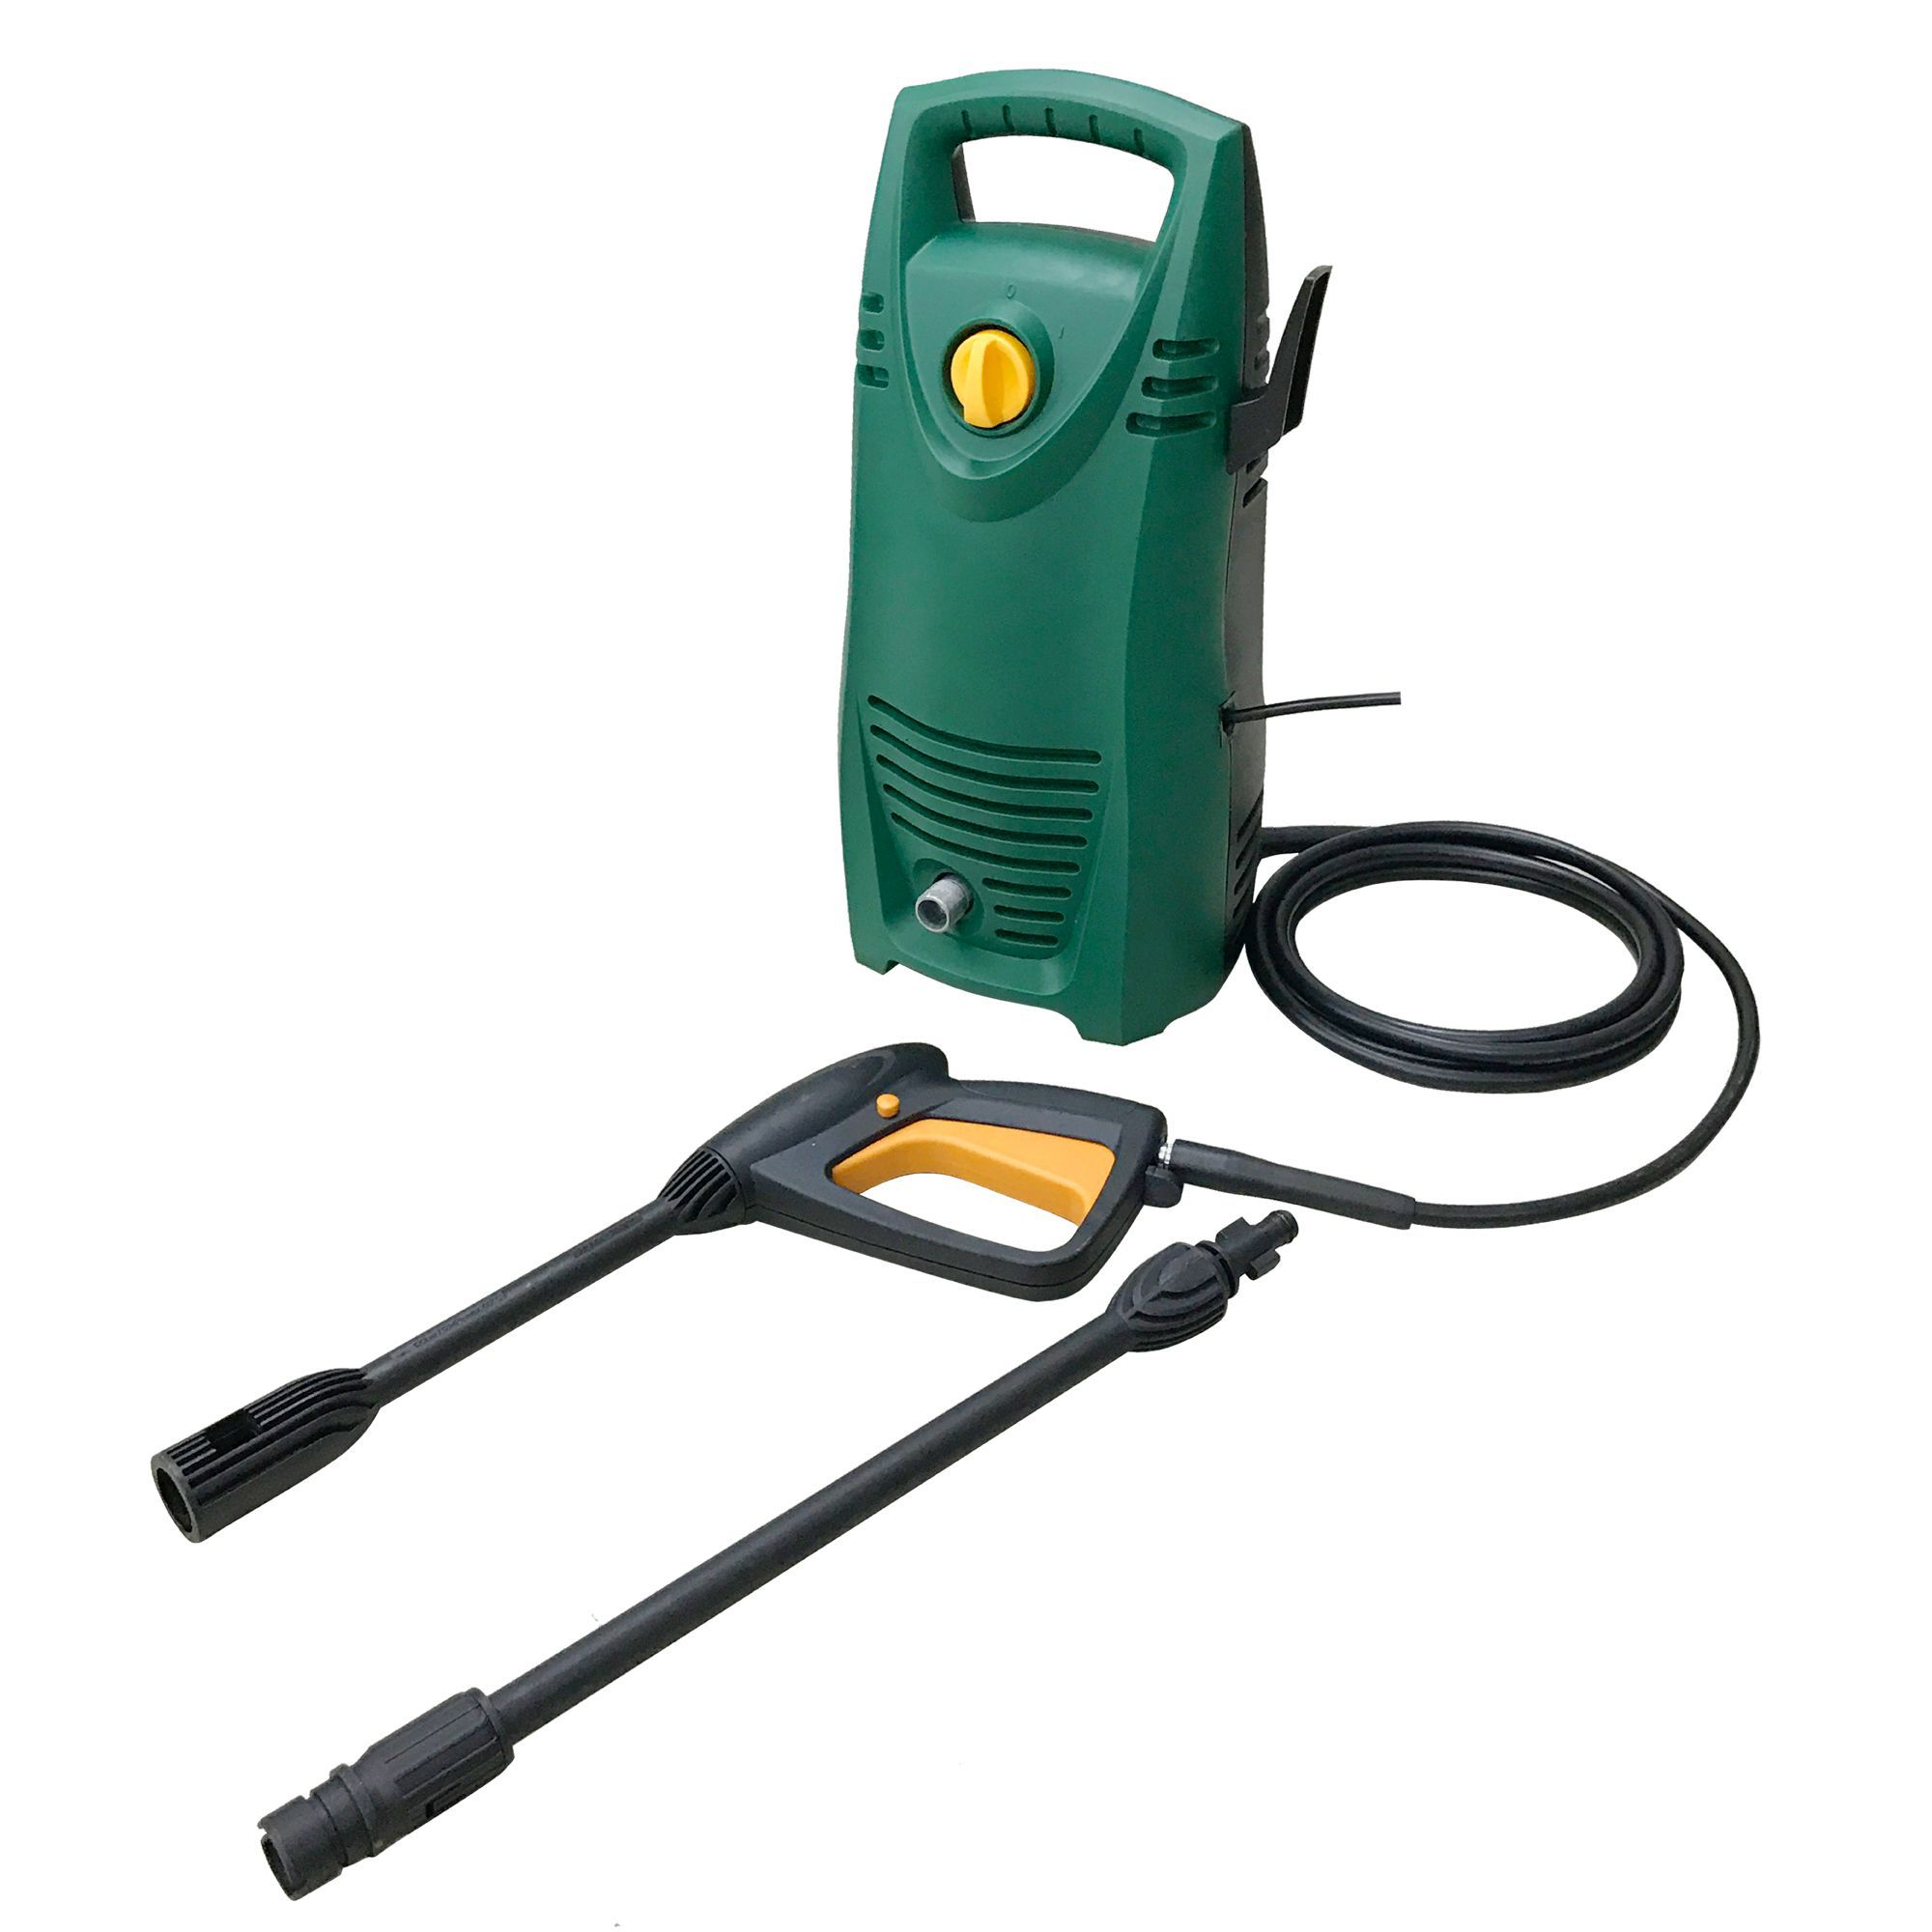 Pressure washer 1400 W | Departments | DIY at B&Q